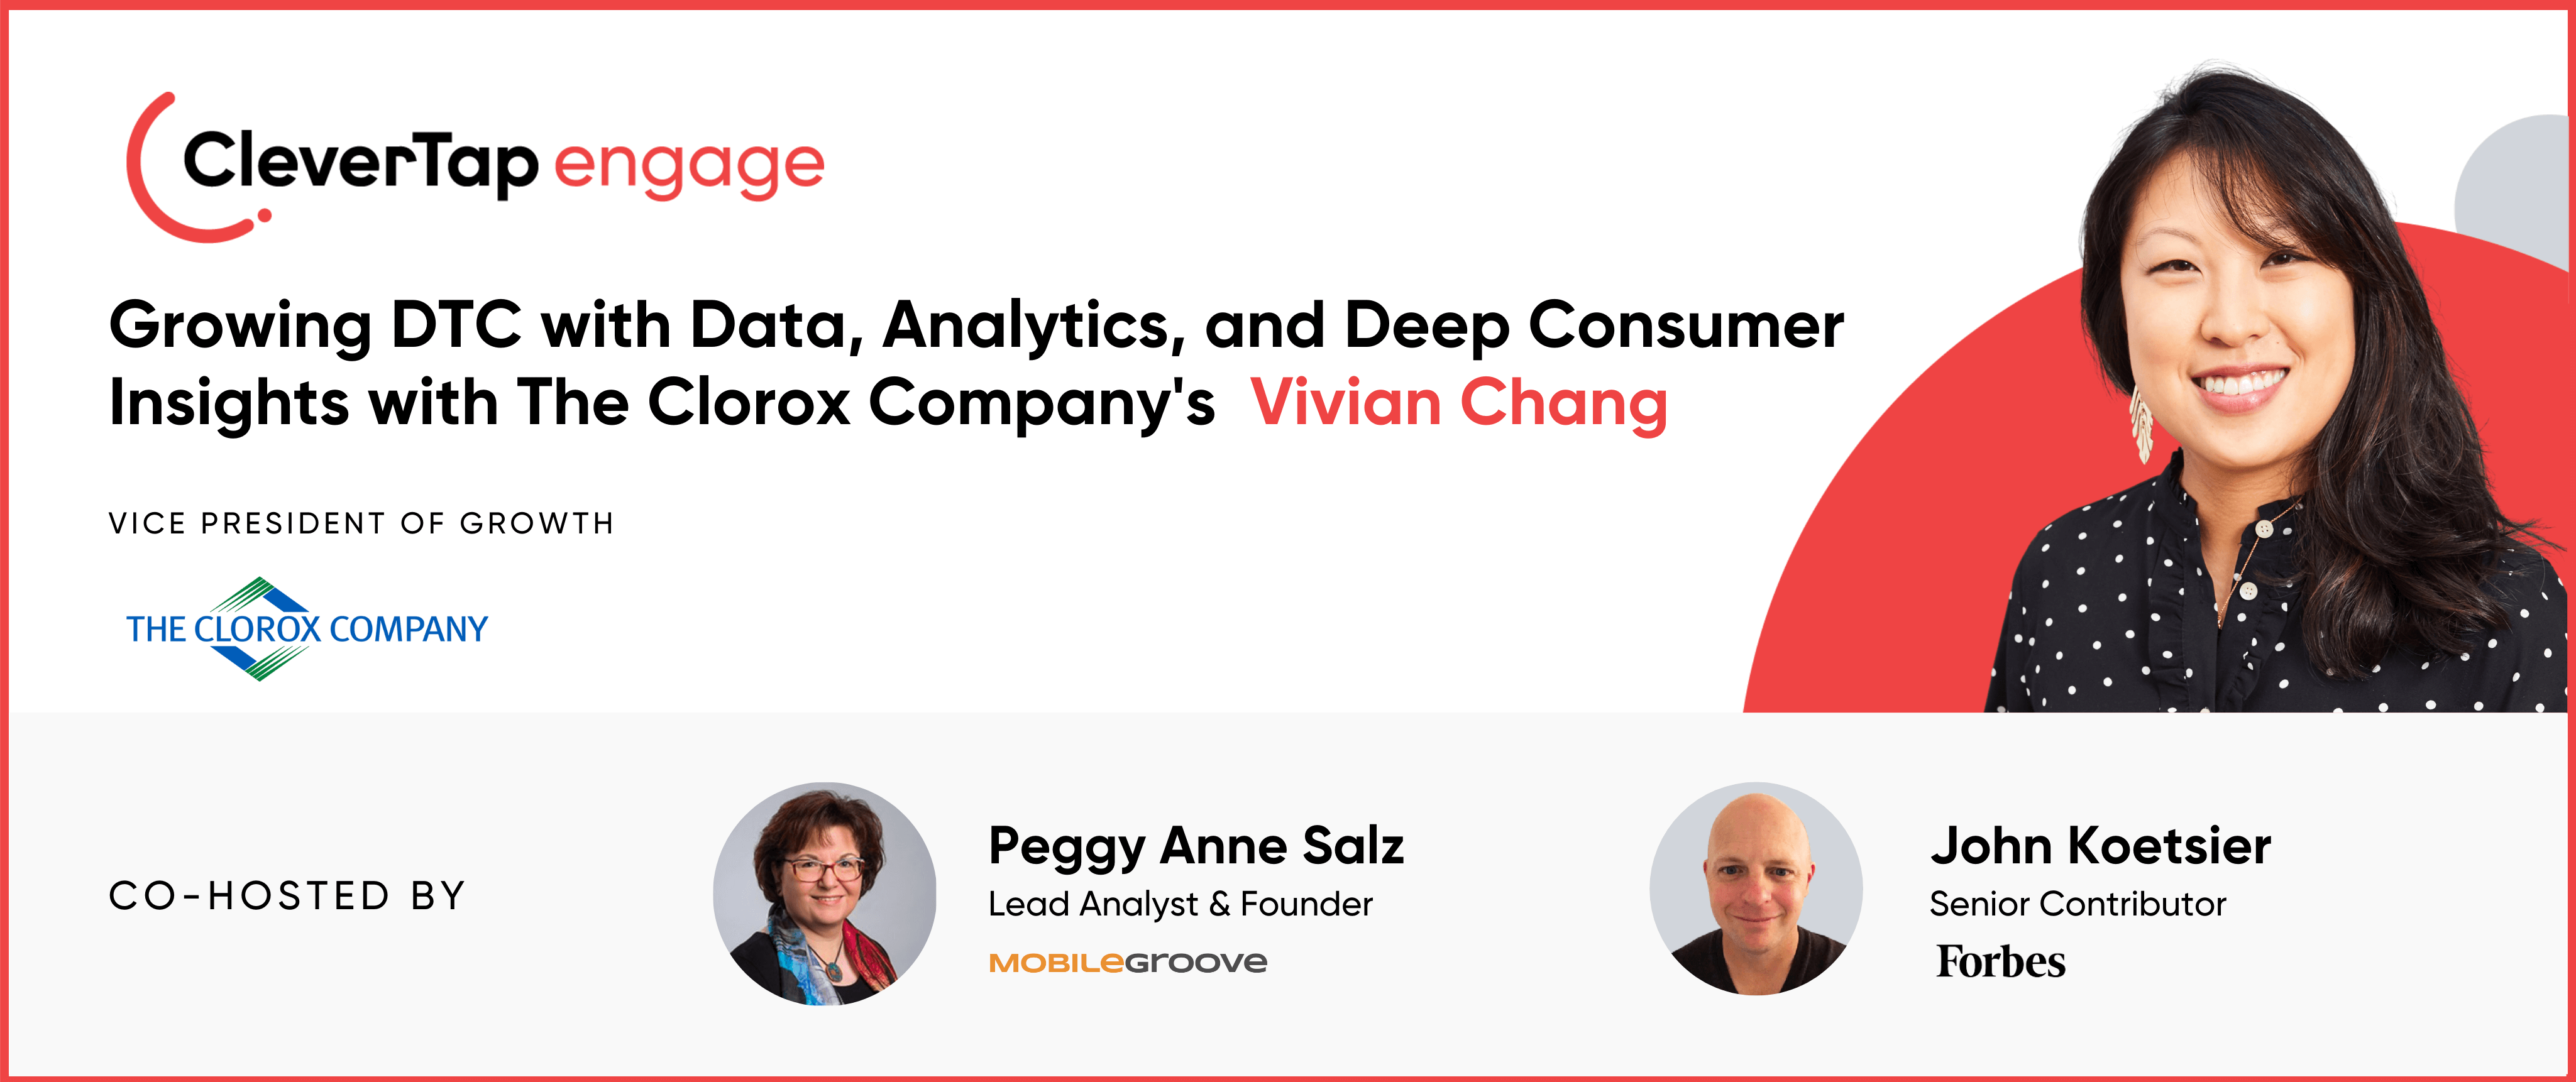 How Clorox VP of Growth Vivian Chang Harnesses Data and Predictive Modeling to Grow Direct-to-Consumer Business